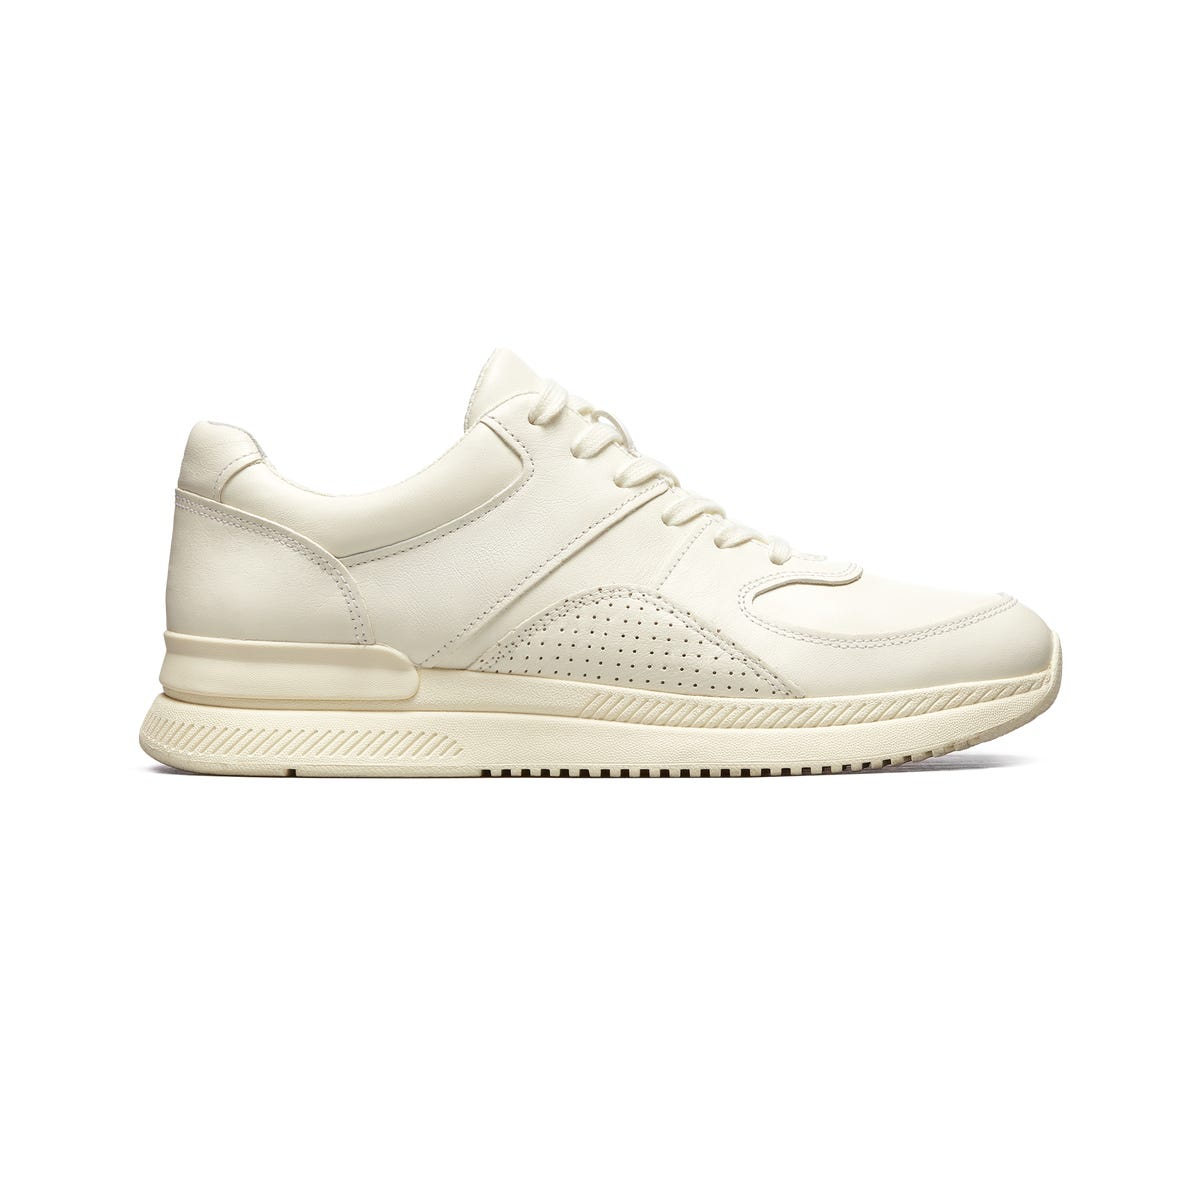 8e82dcbfc Best White Sneakers For Women - 2019 Cool New Trends